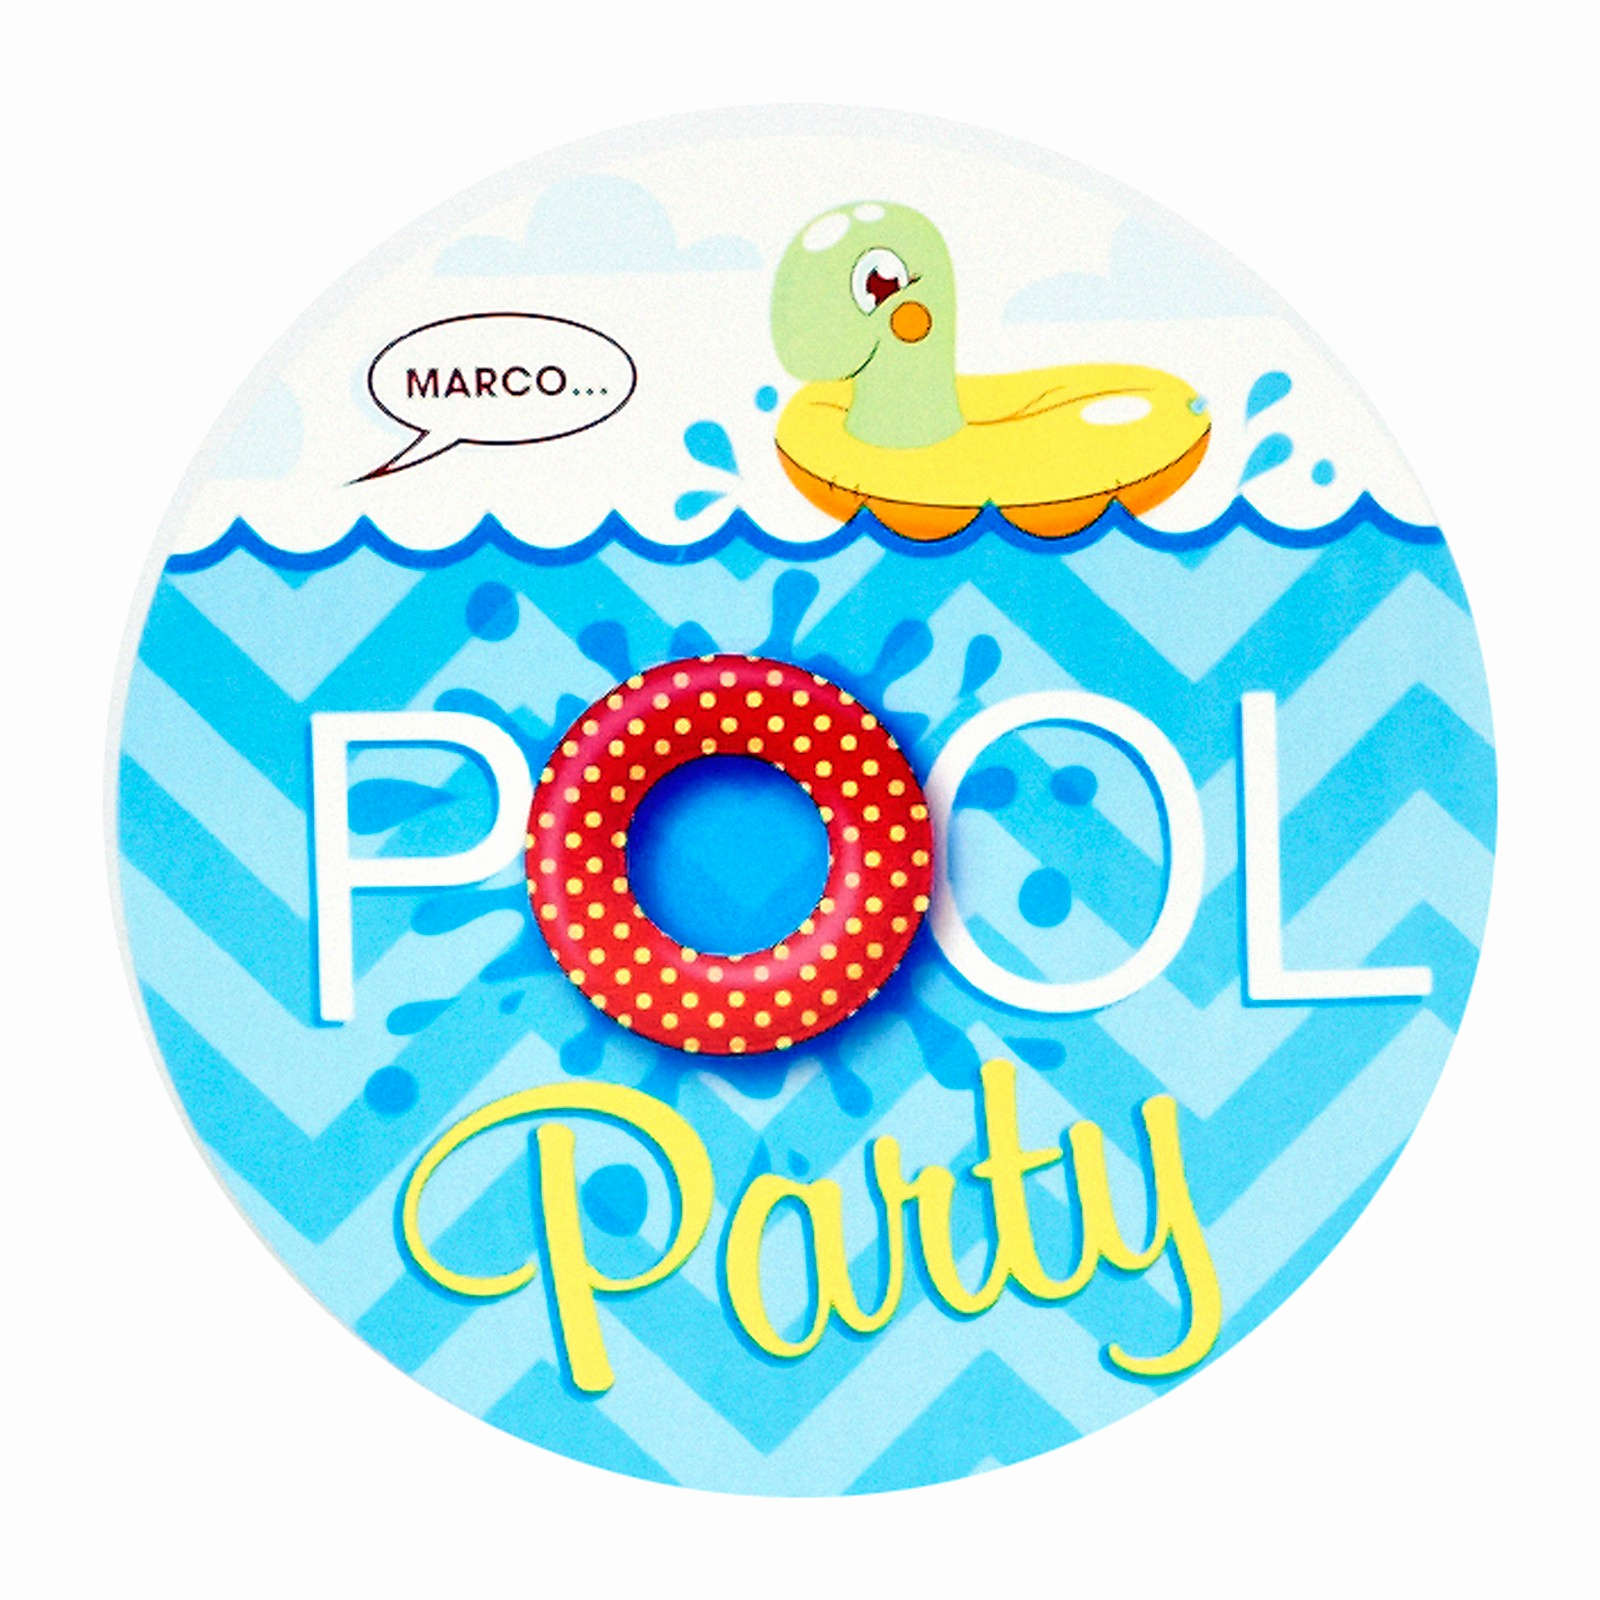 Kids Pool Party Invitation New Pool Party ashton Creek